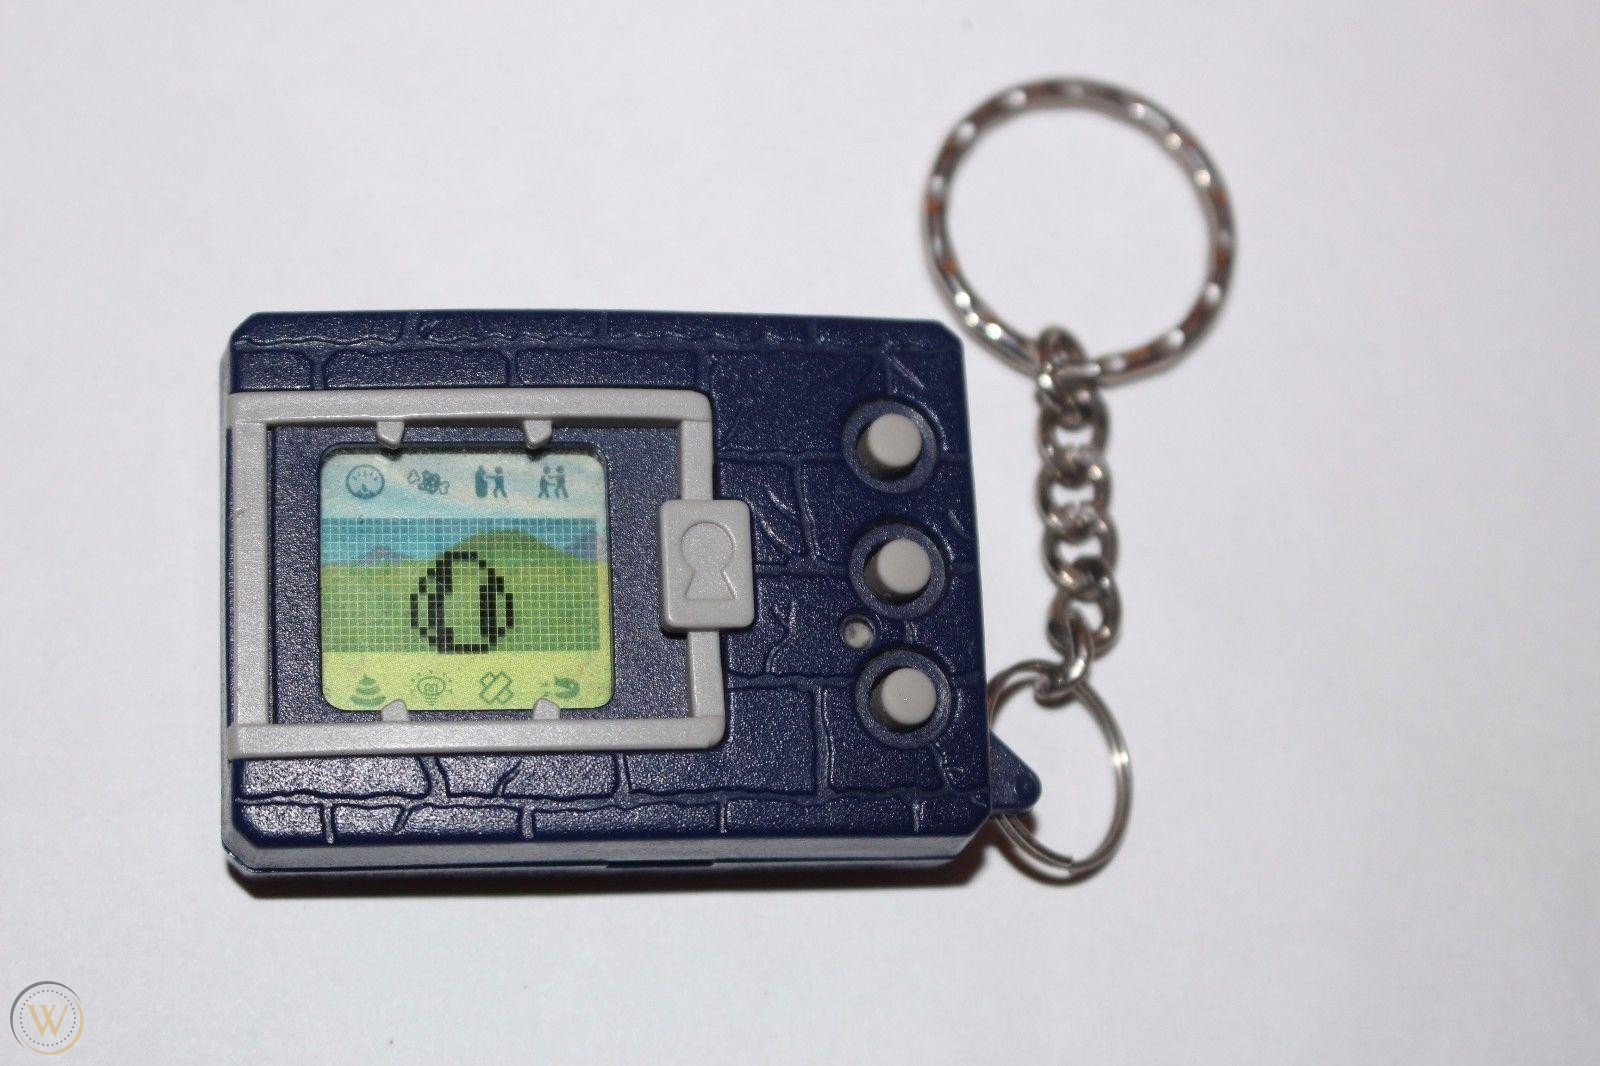 digimon-virtual-pet-electronic-toy_1_2e283ce23ec45bd49f8805e8e06134eb (1).jpg